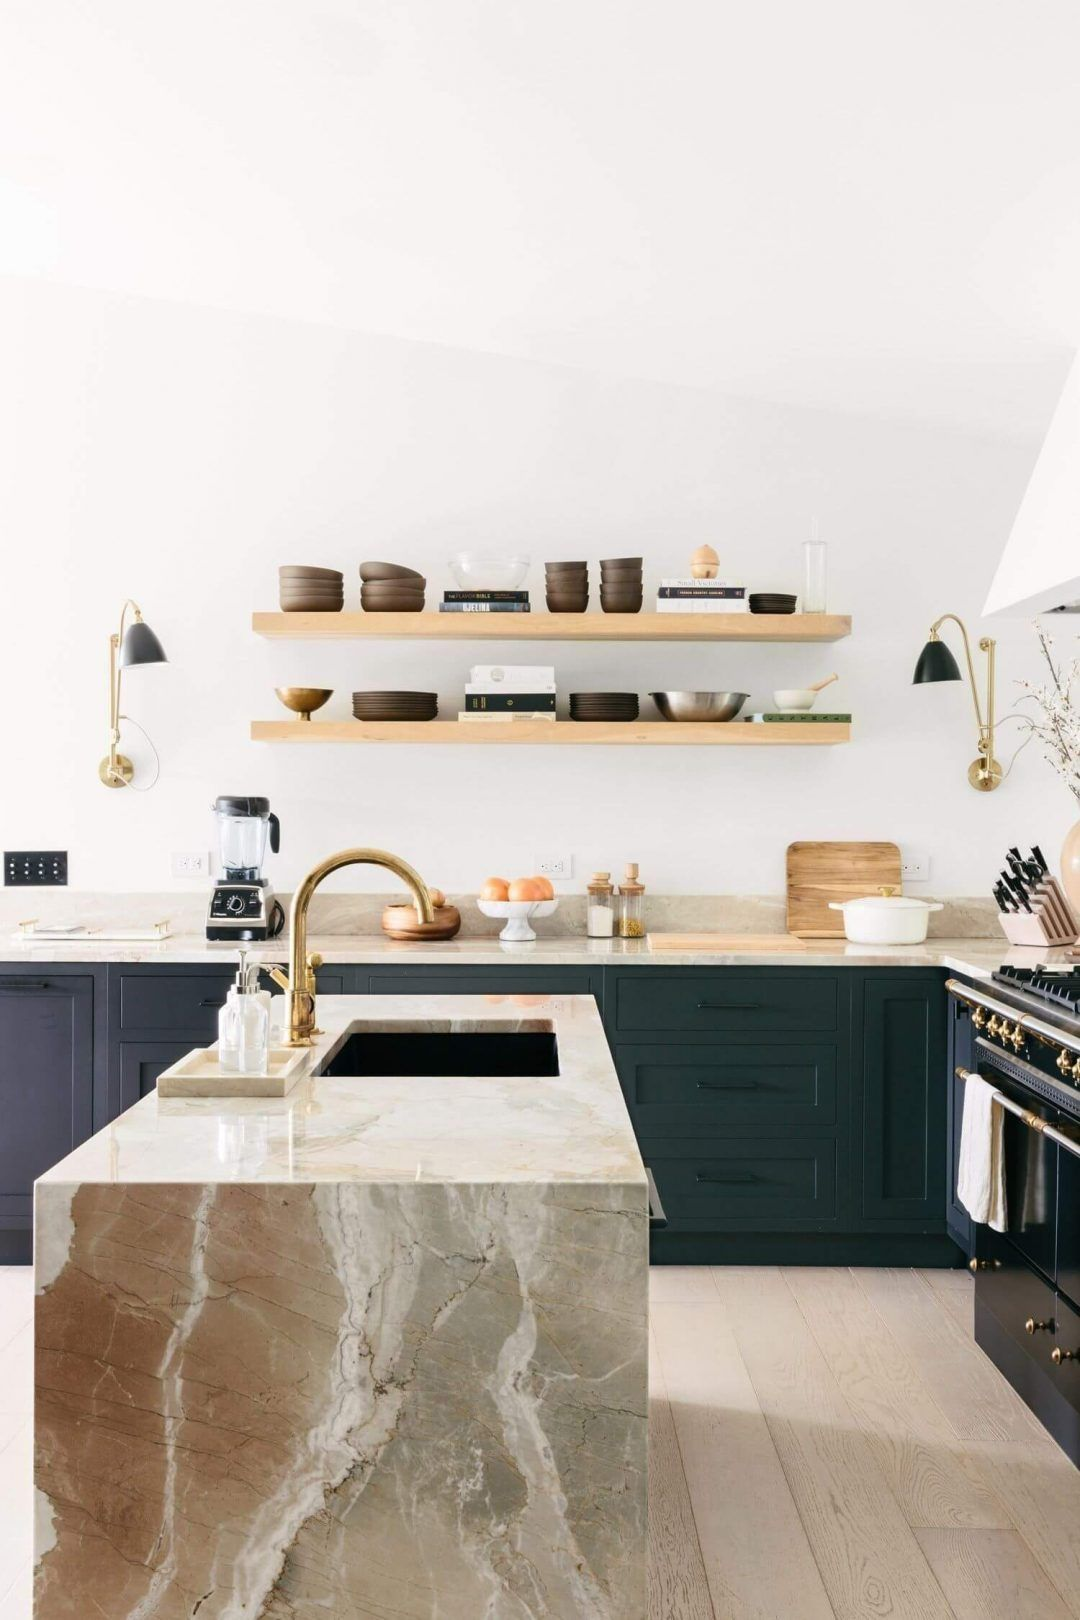 25 Eclectic Scandinavian Kitchen Designs (Let's Bring The Charm!) - Ca7Ed78Cd6589238527686704012Eb77